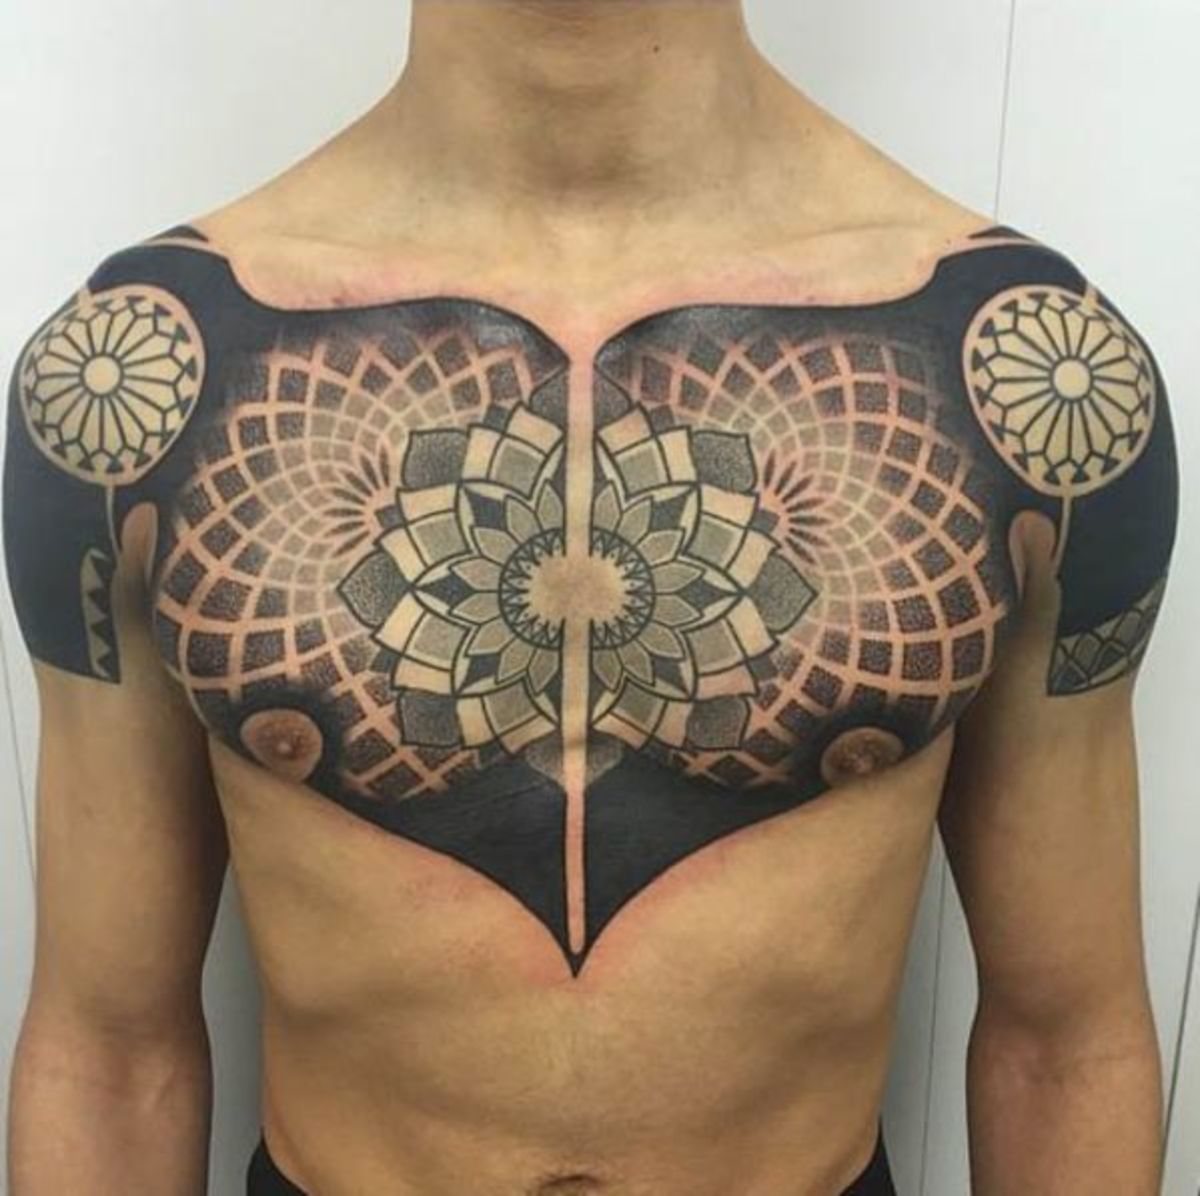 Geometric and Mandala Designs The way that geometric and mandala designs enhance the lines of a man's body really enhance his attractiveness.